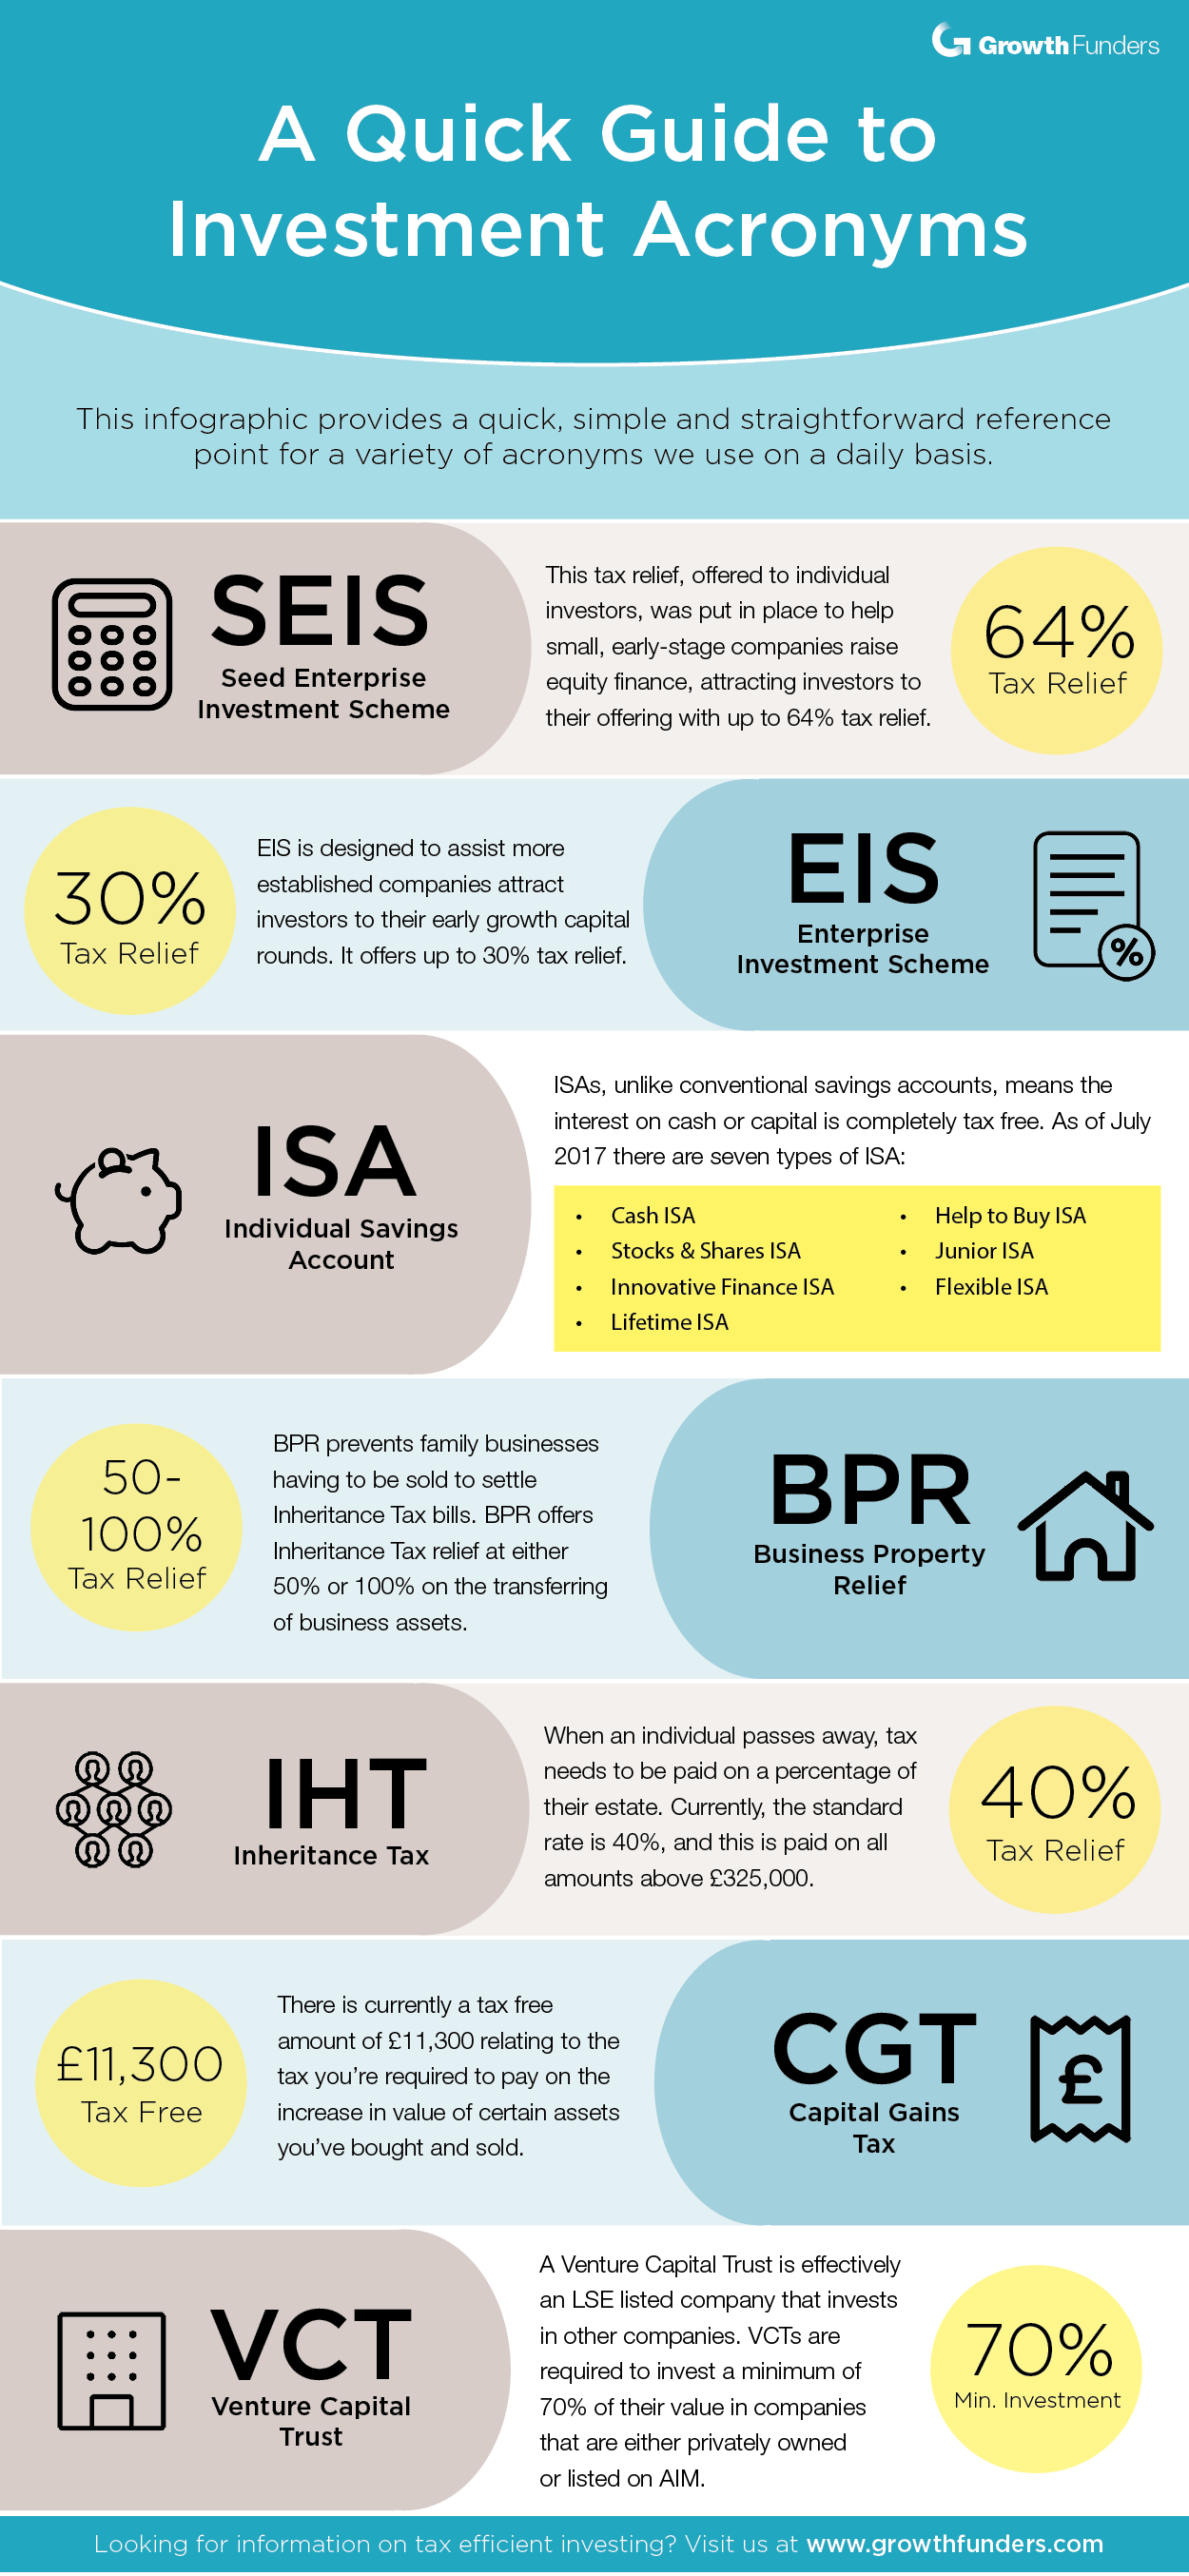 Our most used investment acronyms: an infographic